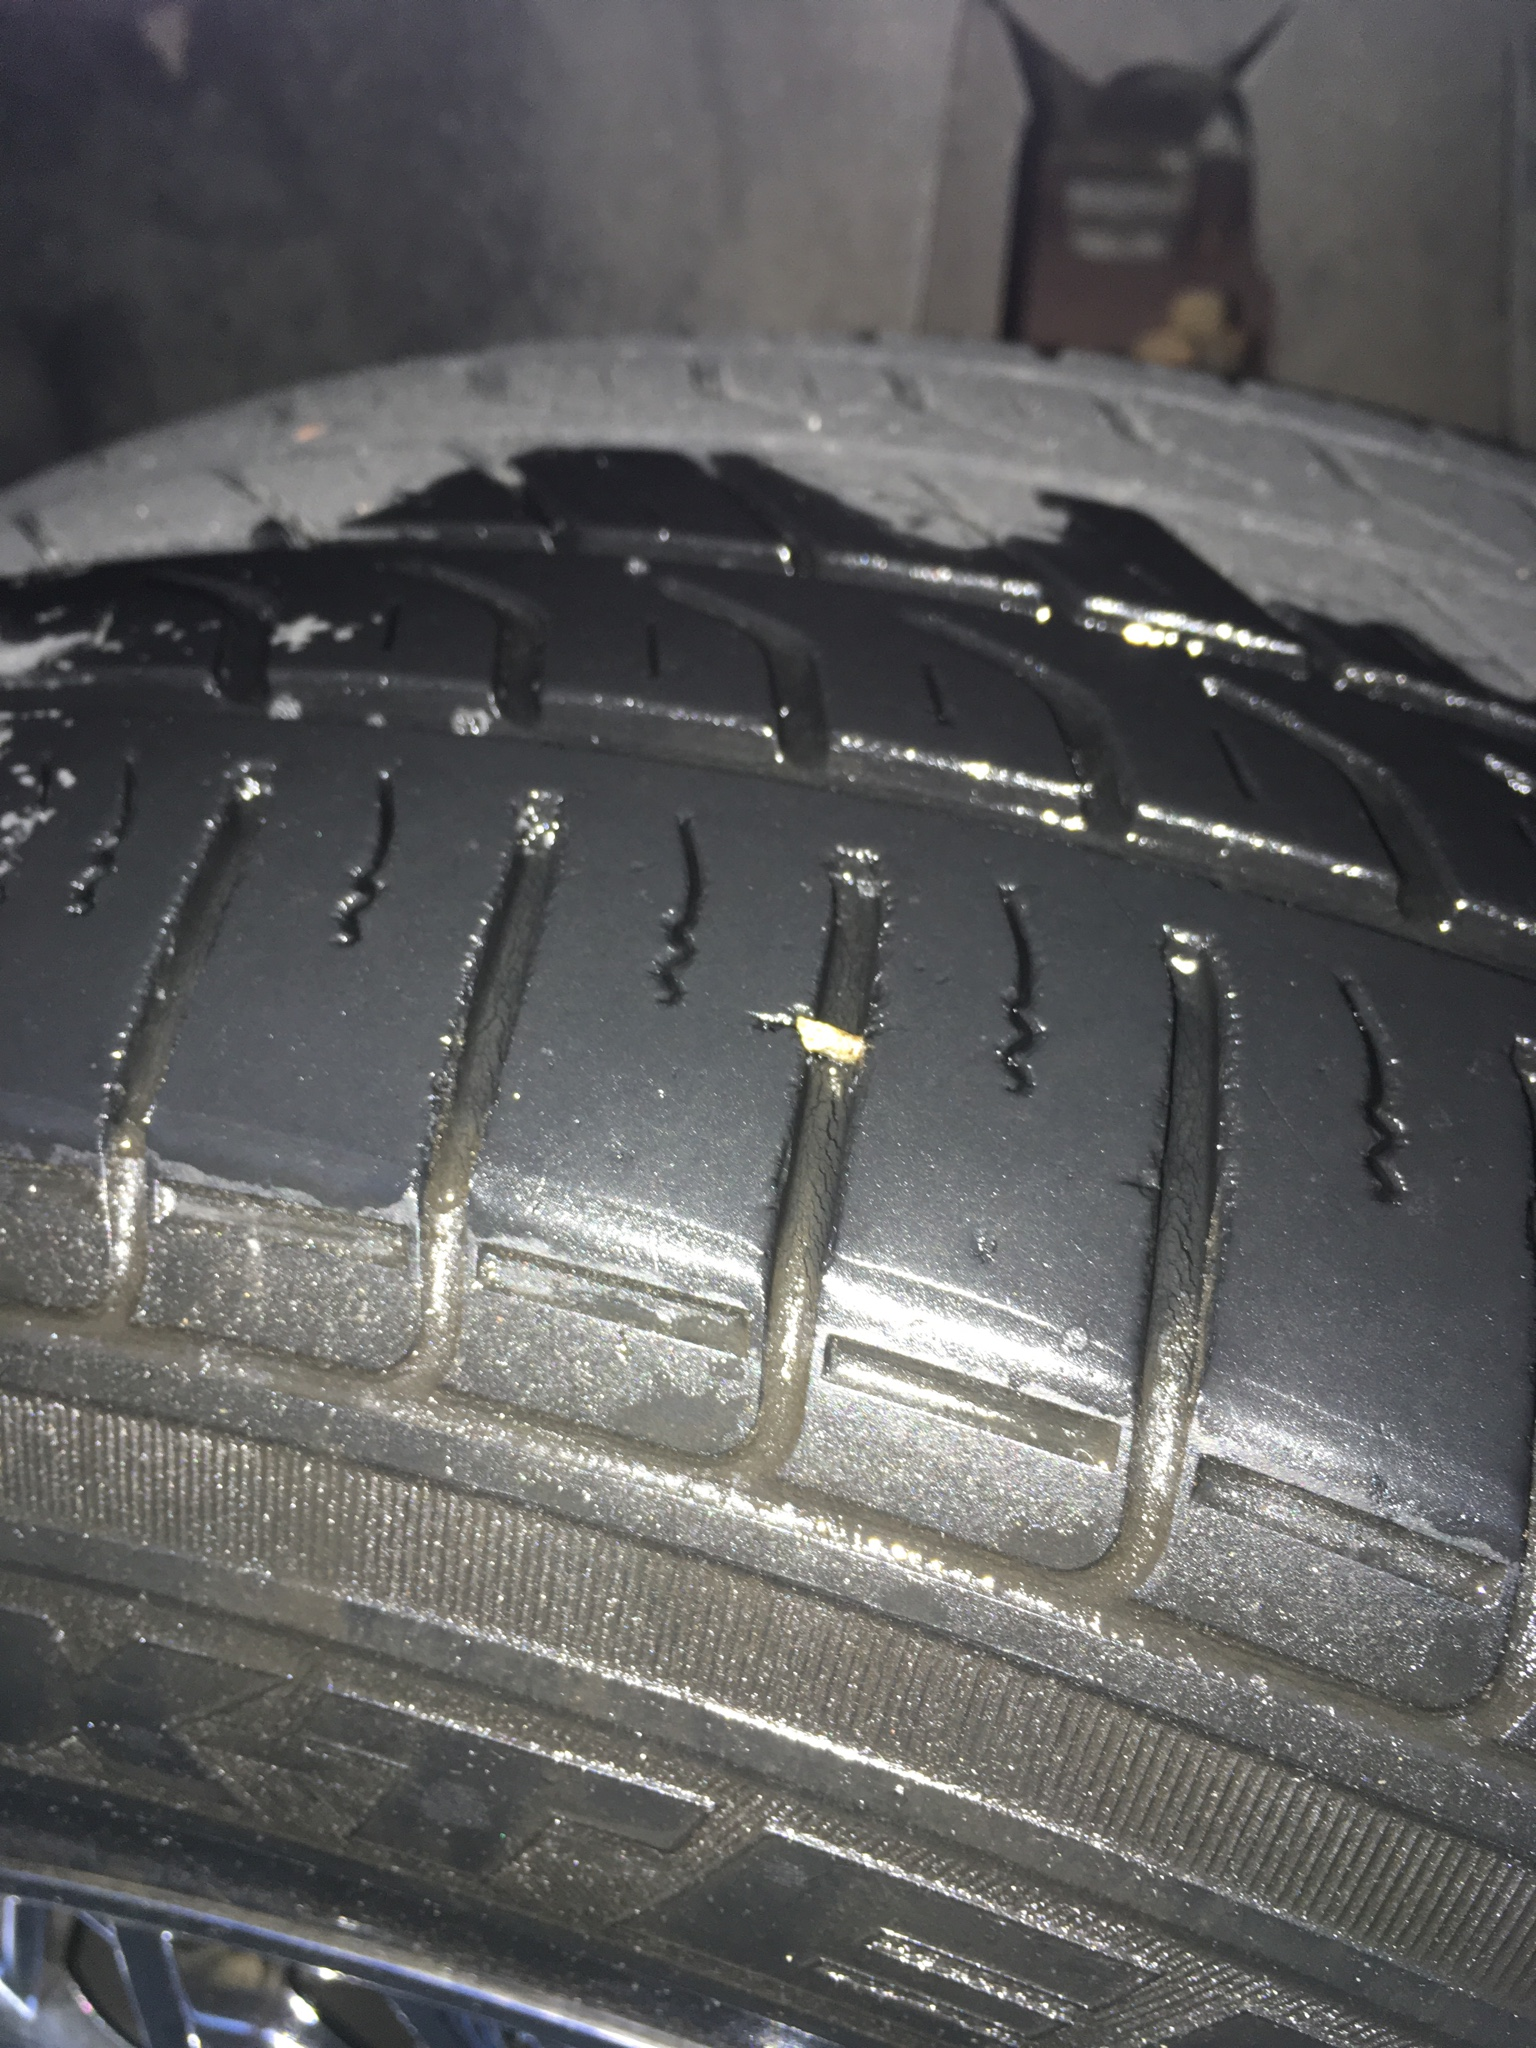 Nail in my tire.